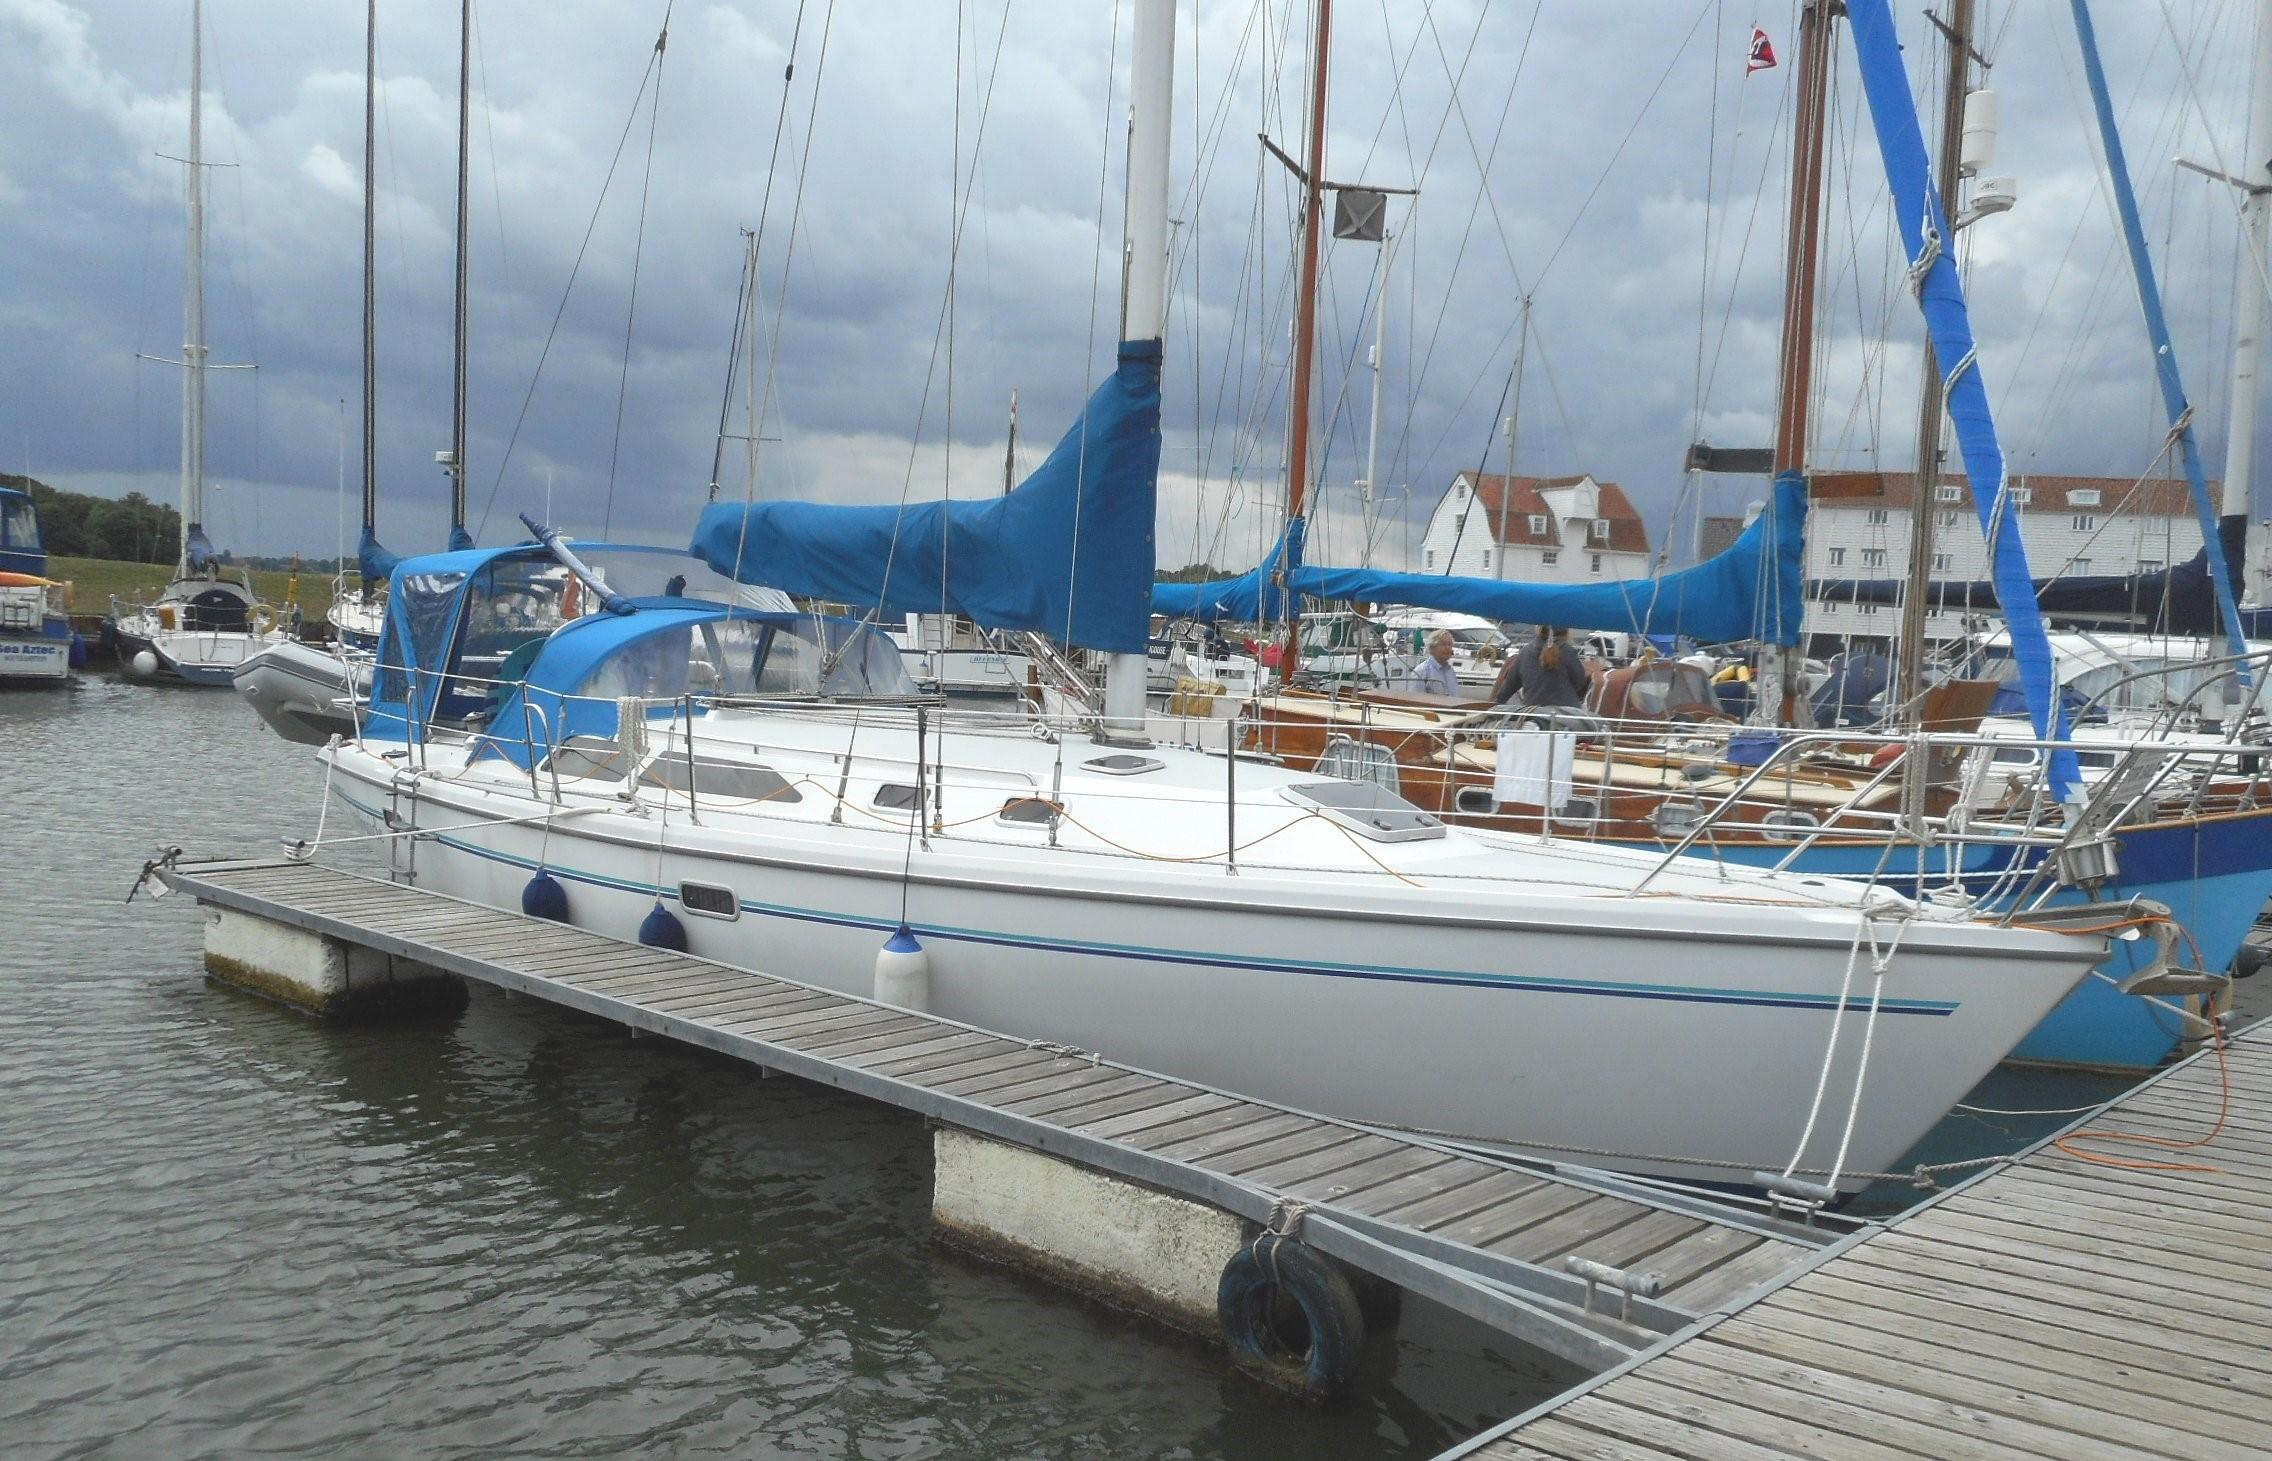 Used Sail Boats For Sale - Howard Ford Marine Sales in